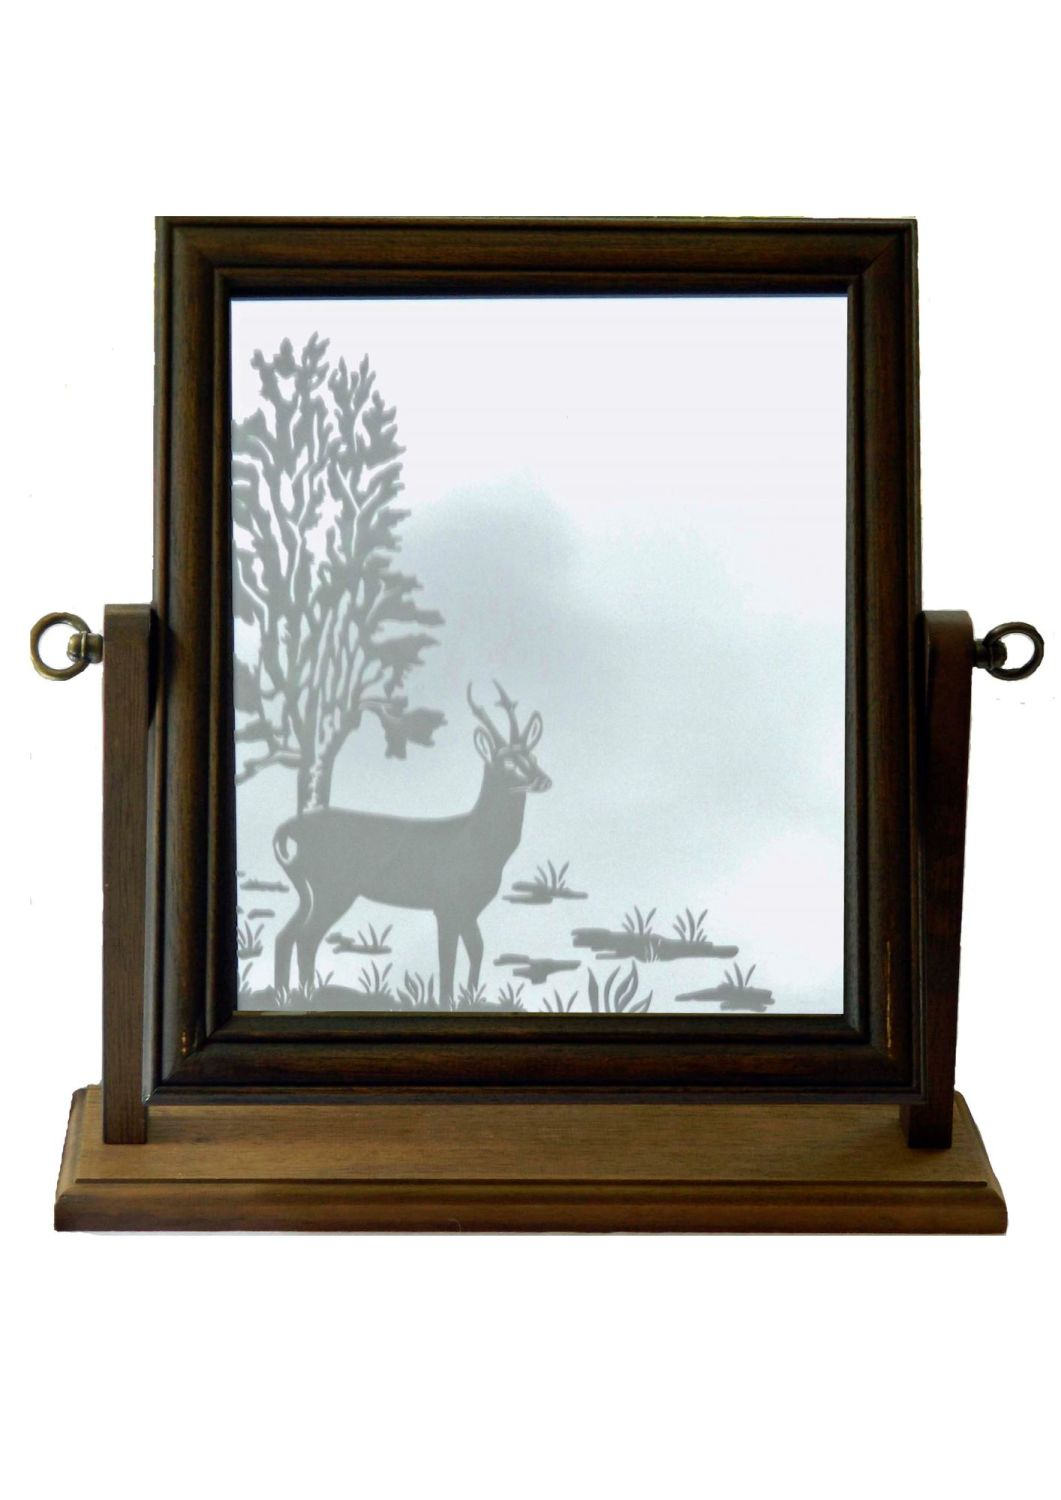 Table mirror - Roe Buck